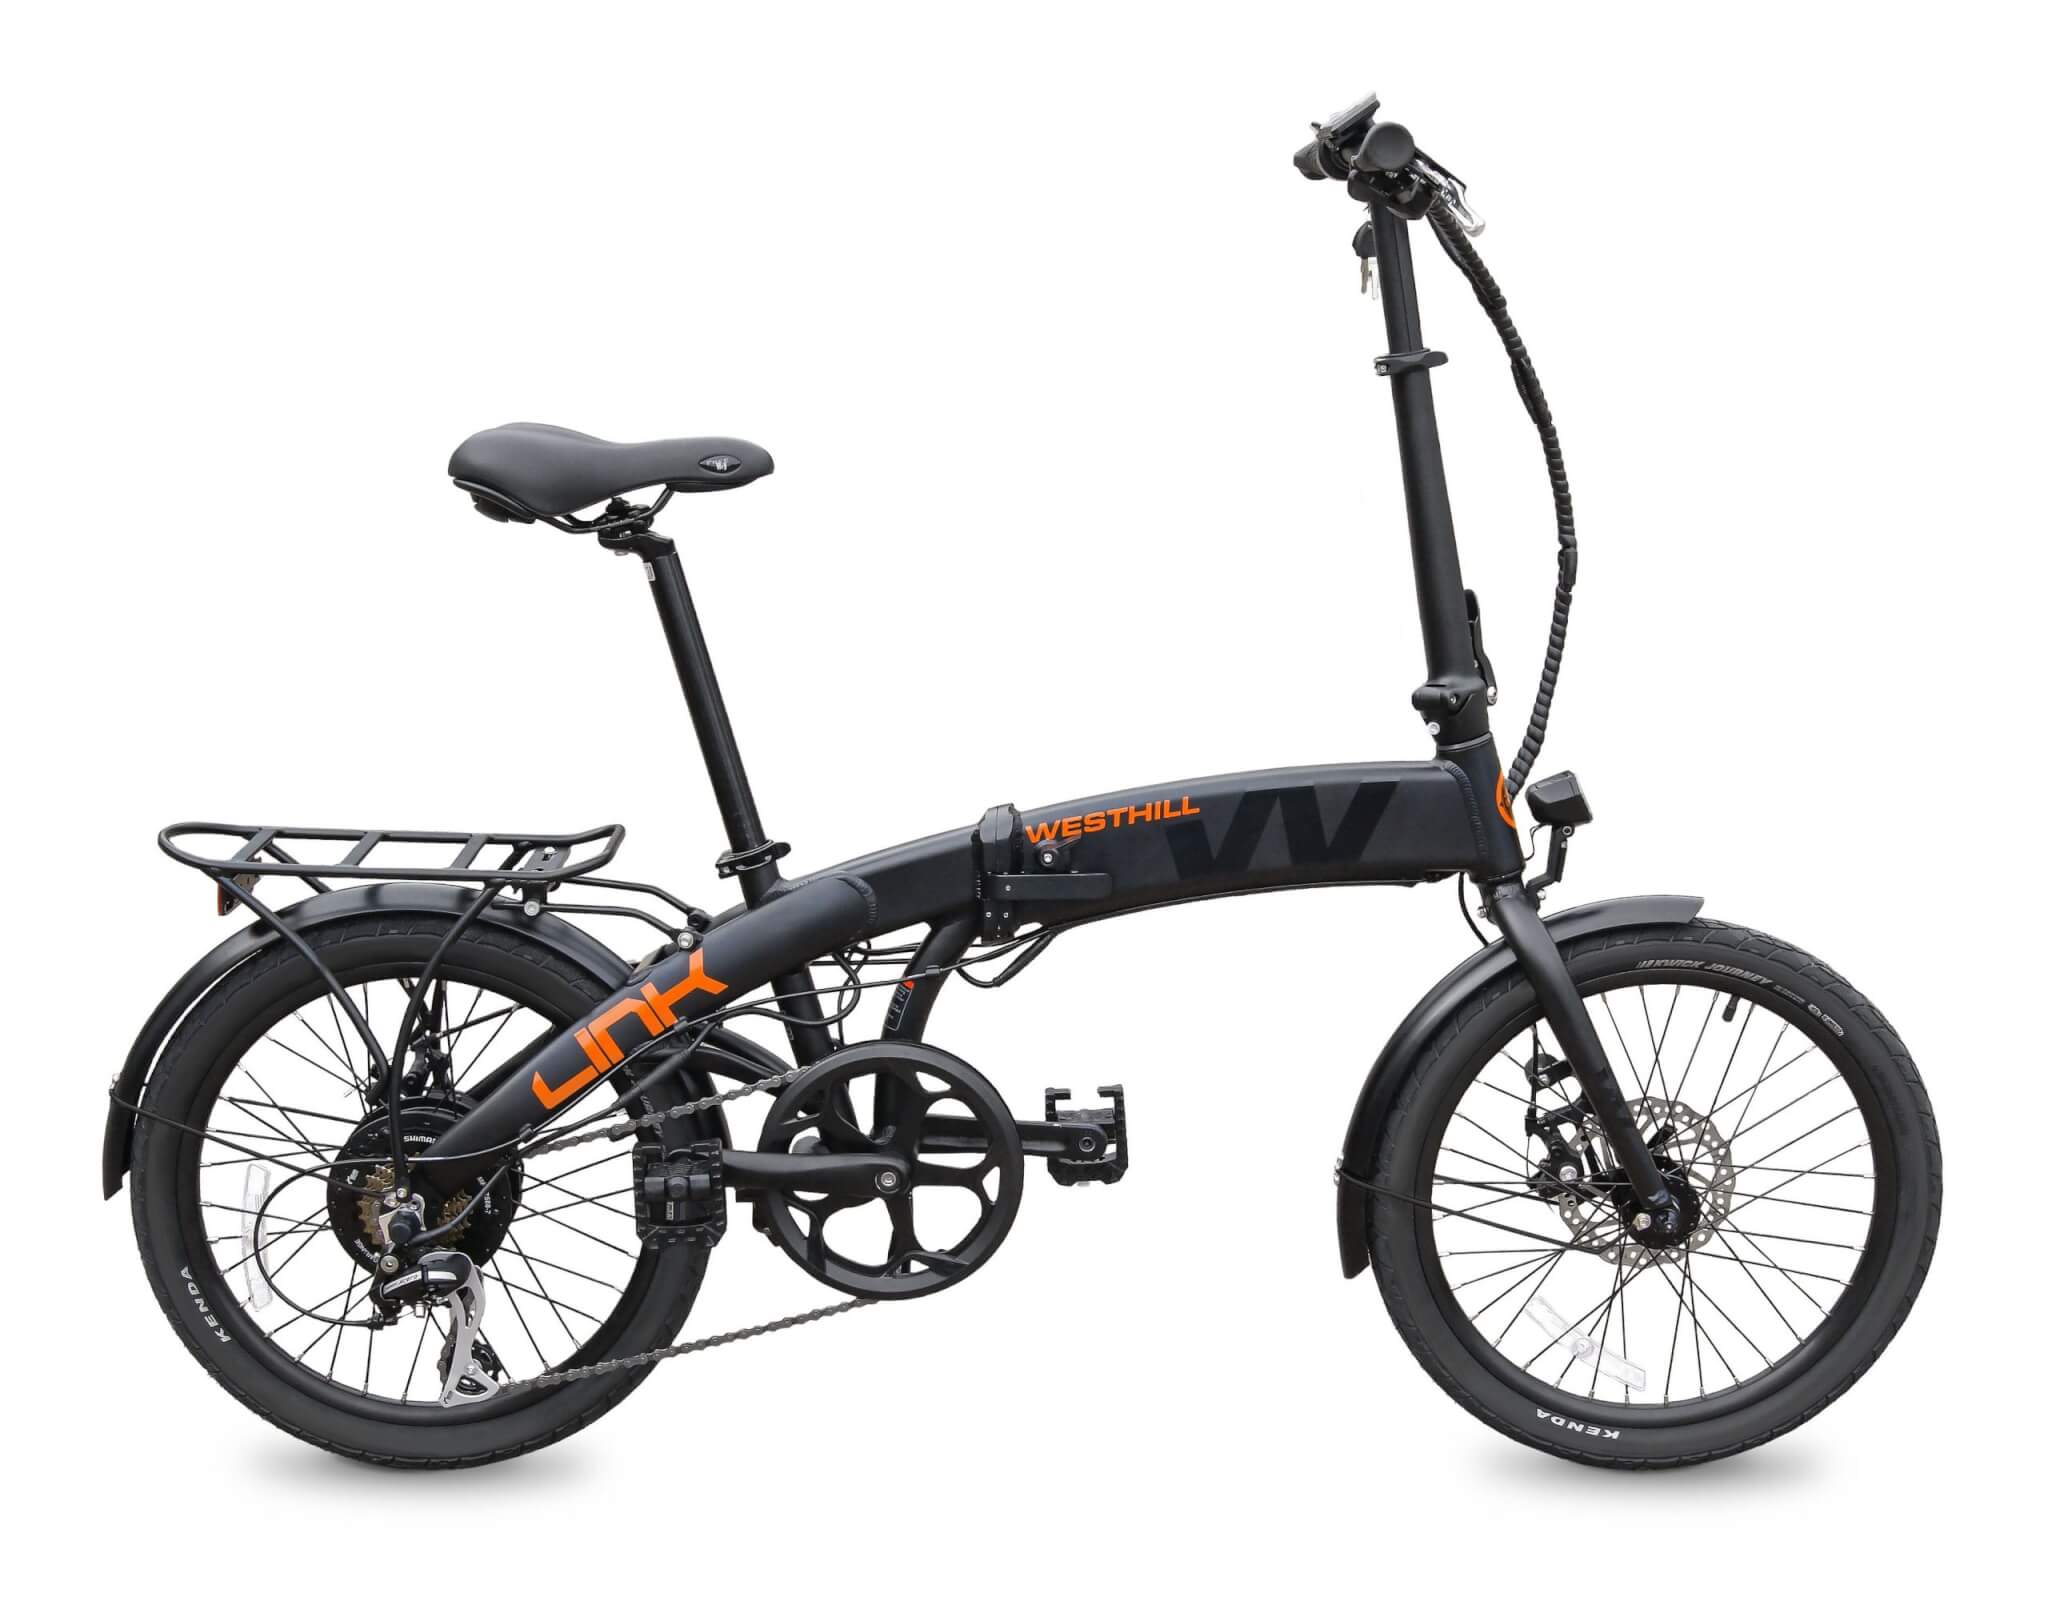 westhill link foldable ebike